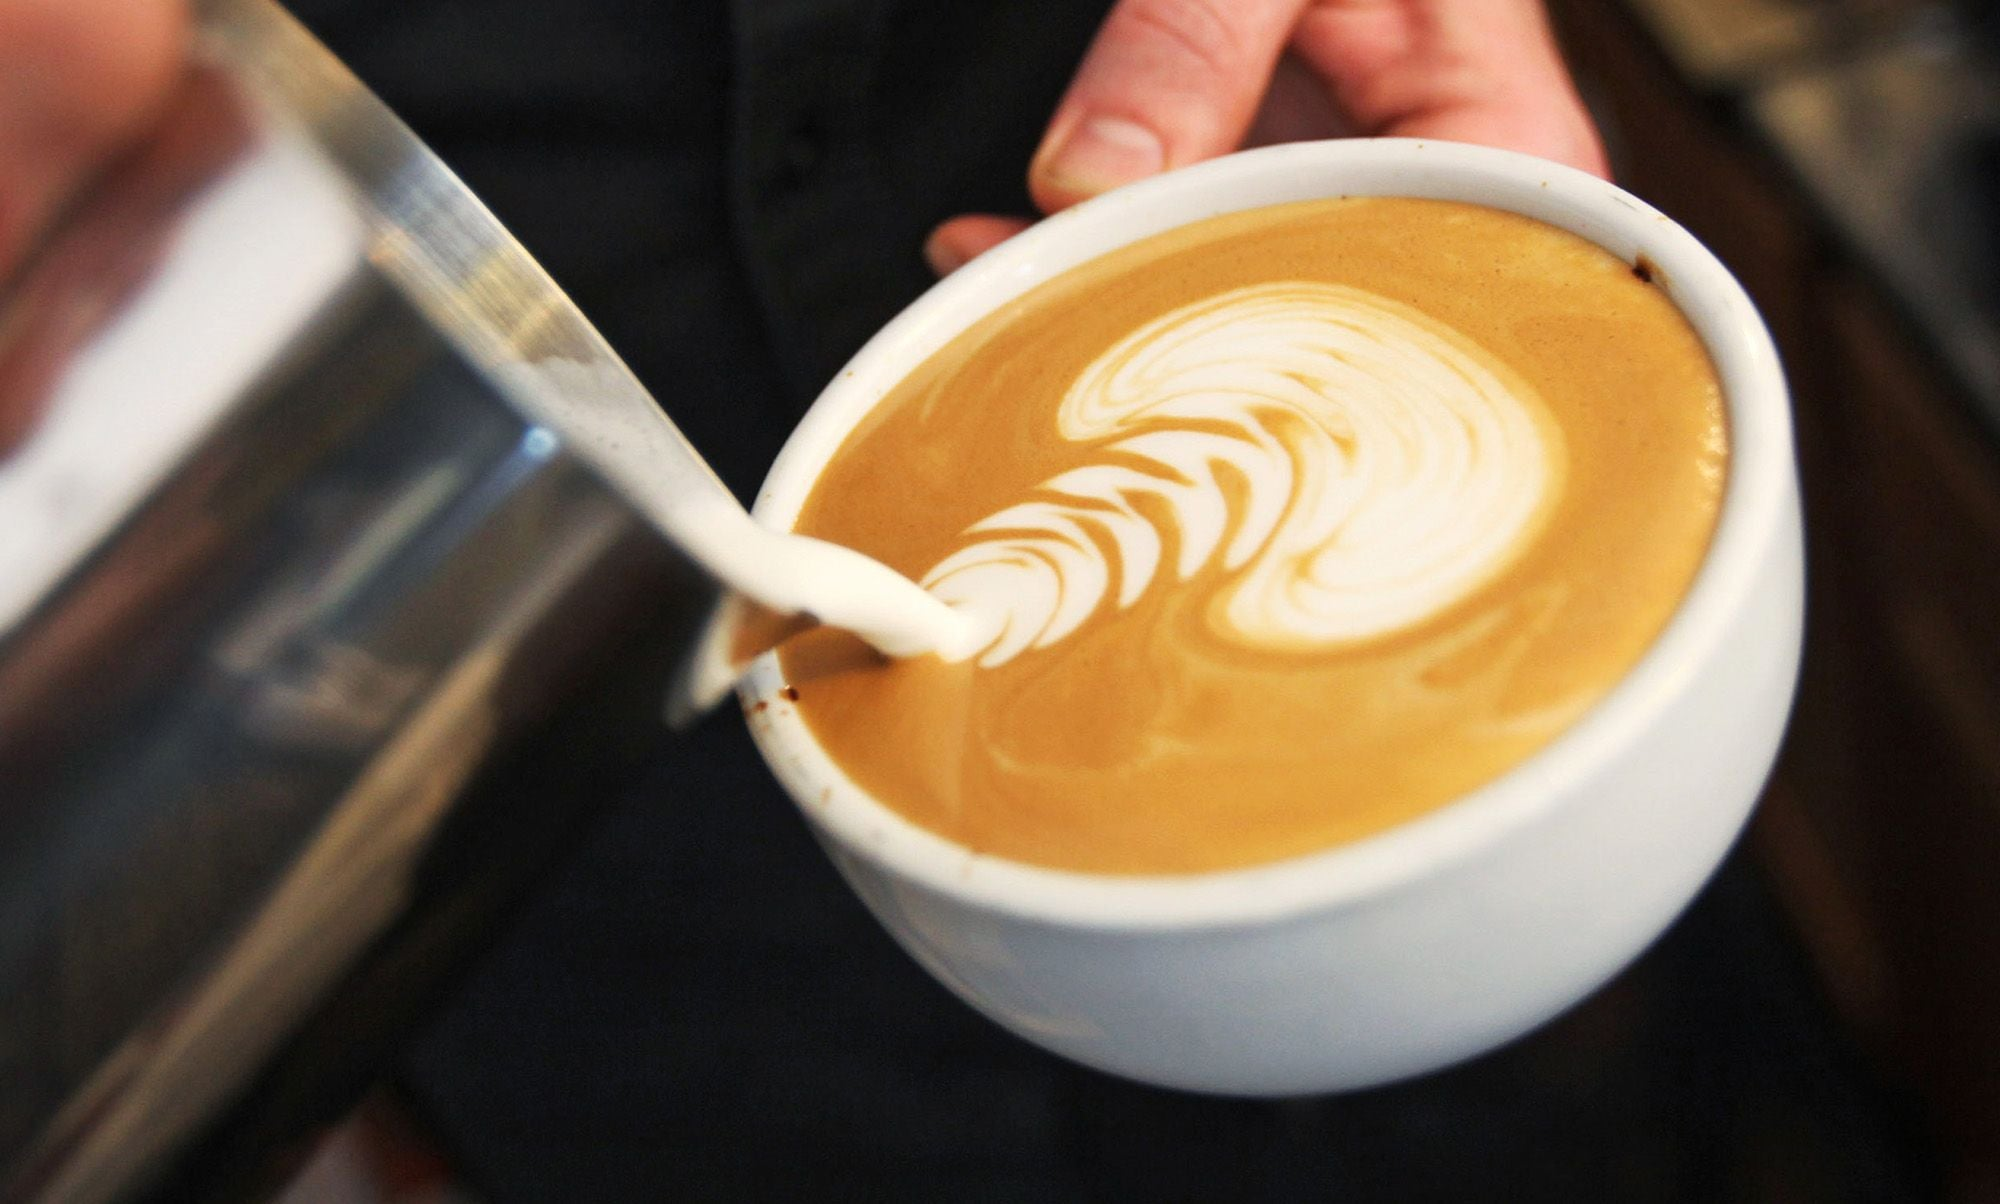 Mass. ranked 10th 'most awake' state based on number of coffee shops. Do you agree?